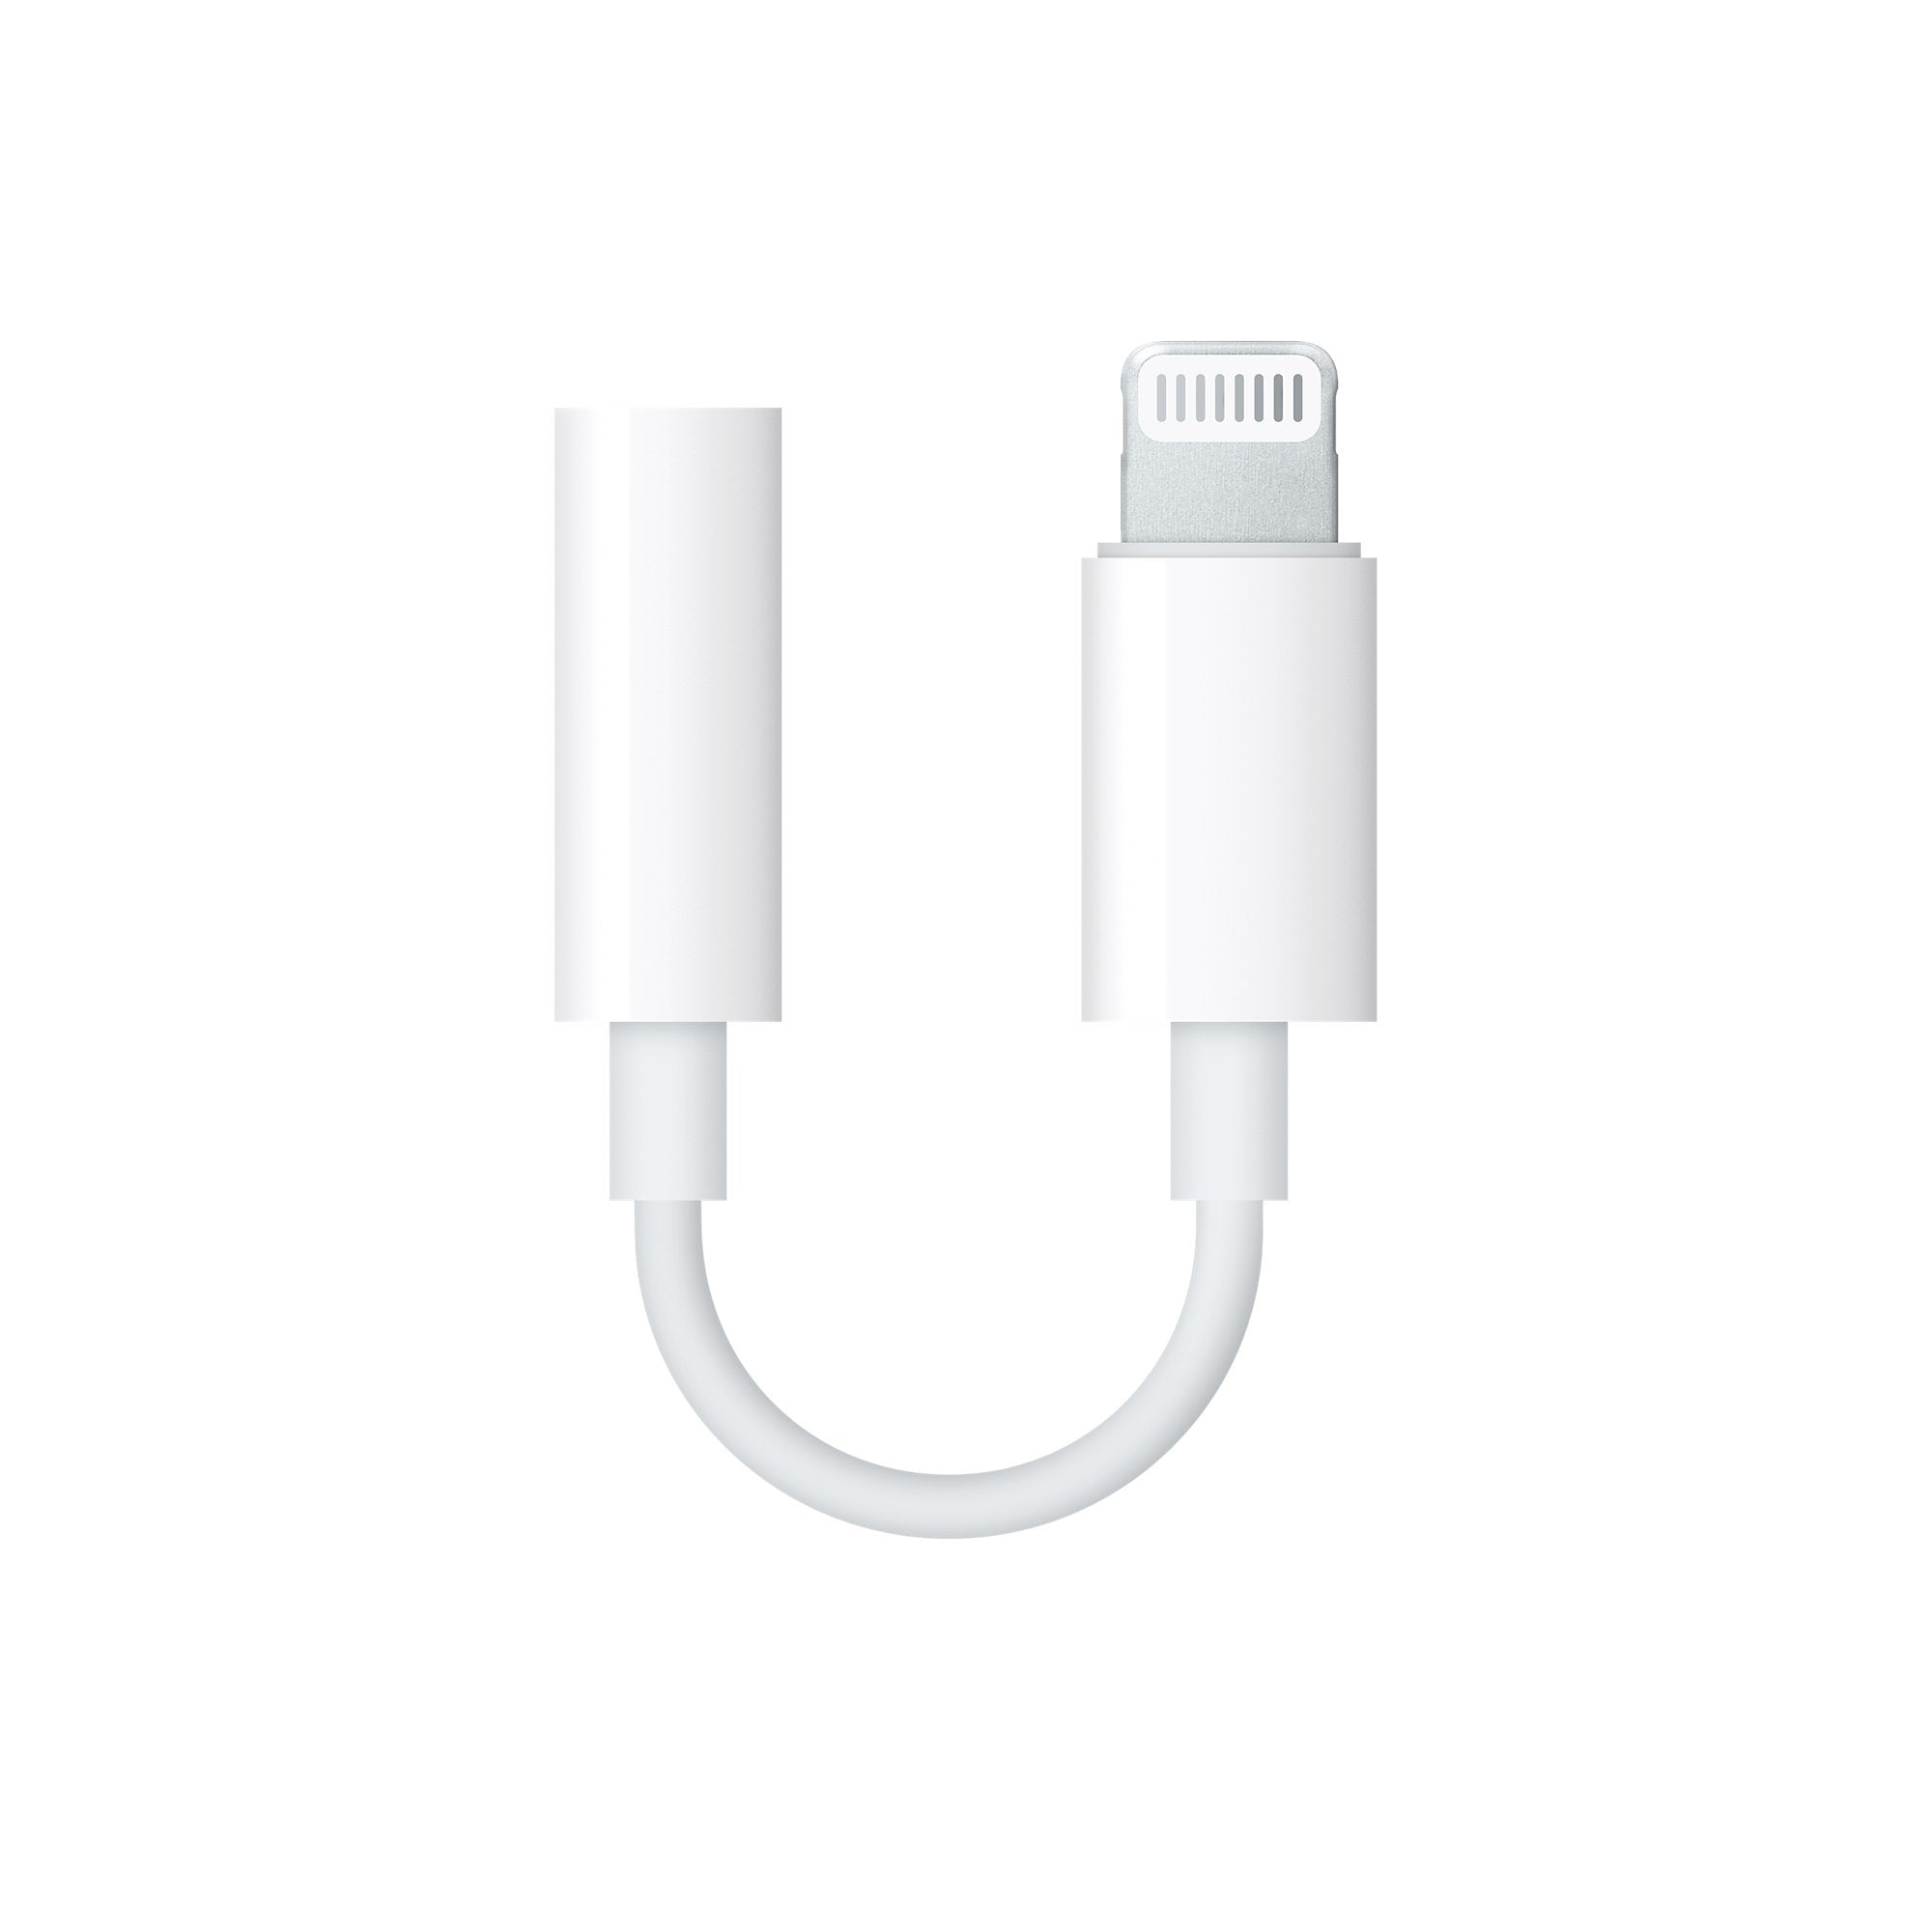 Apple · Lightning til AUX (Adapter)